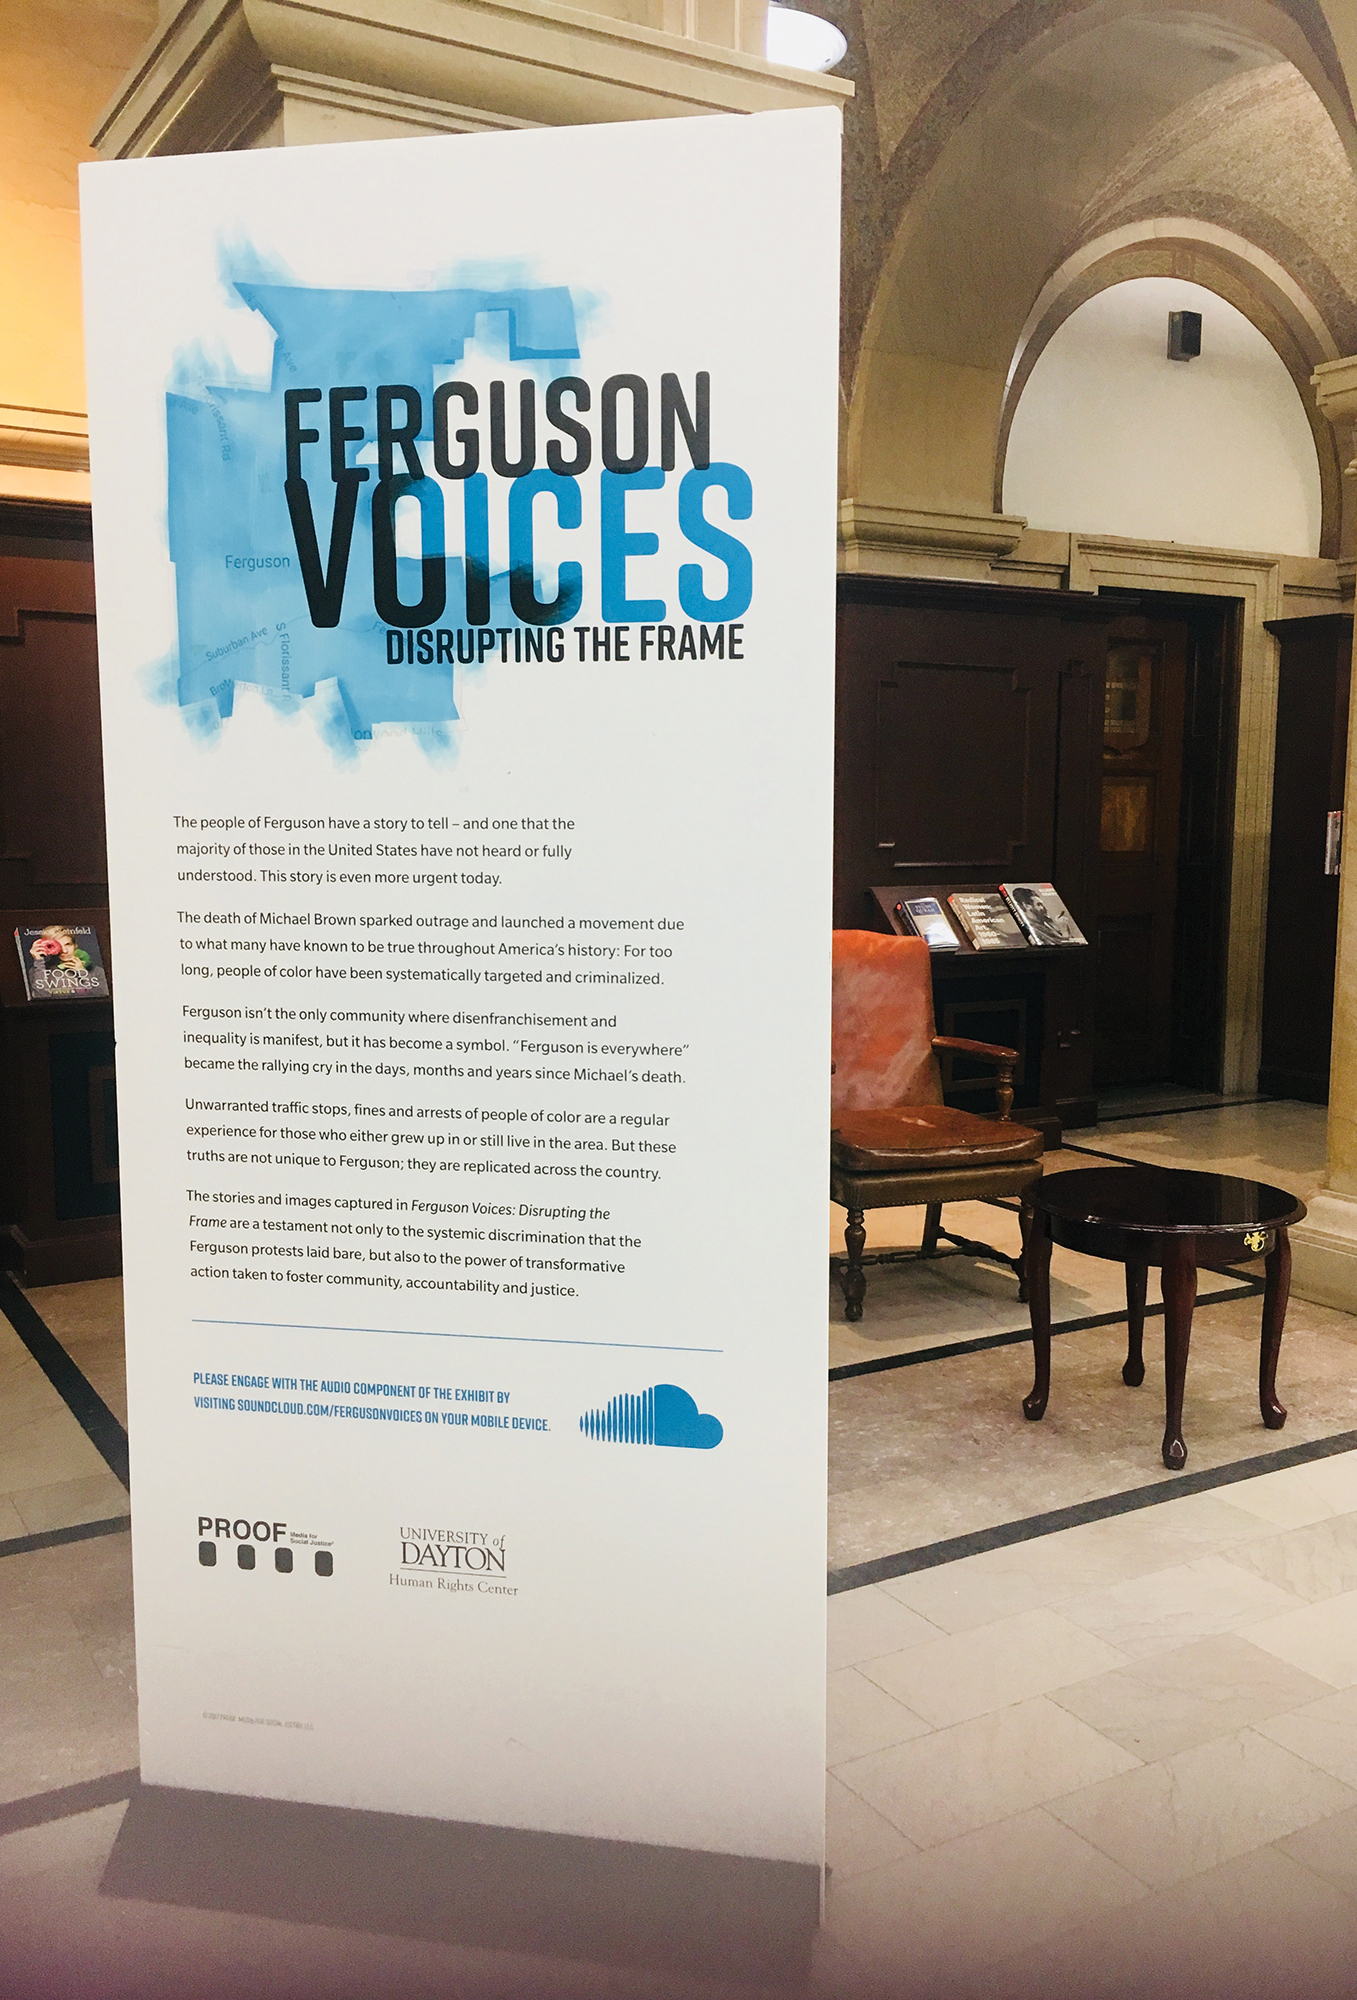 Ferguson Voices: Disrupting the Frame  at Newark Public Library, 2018